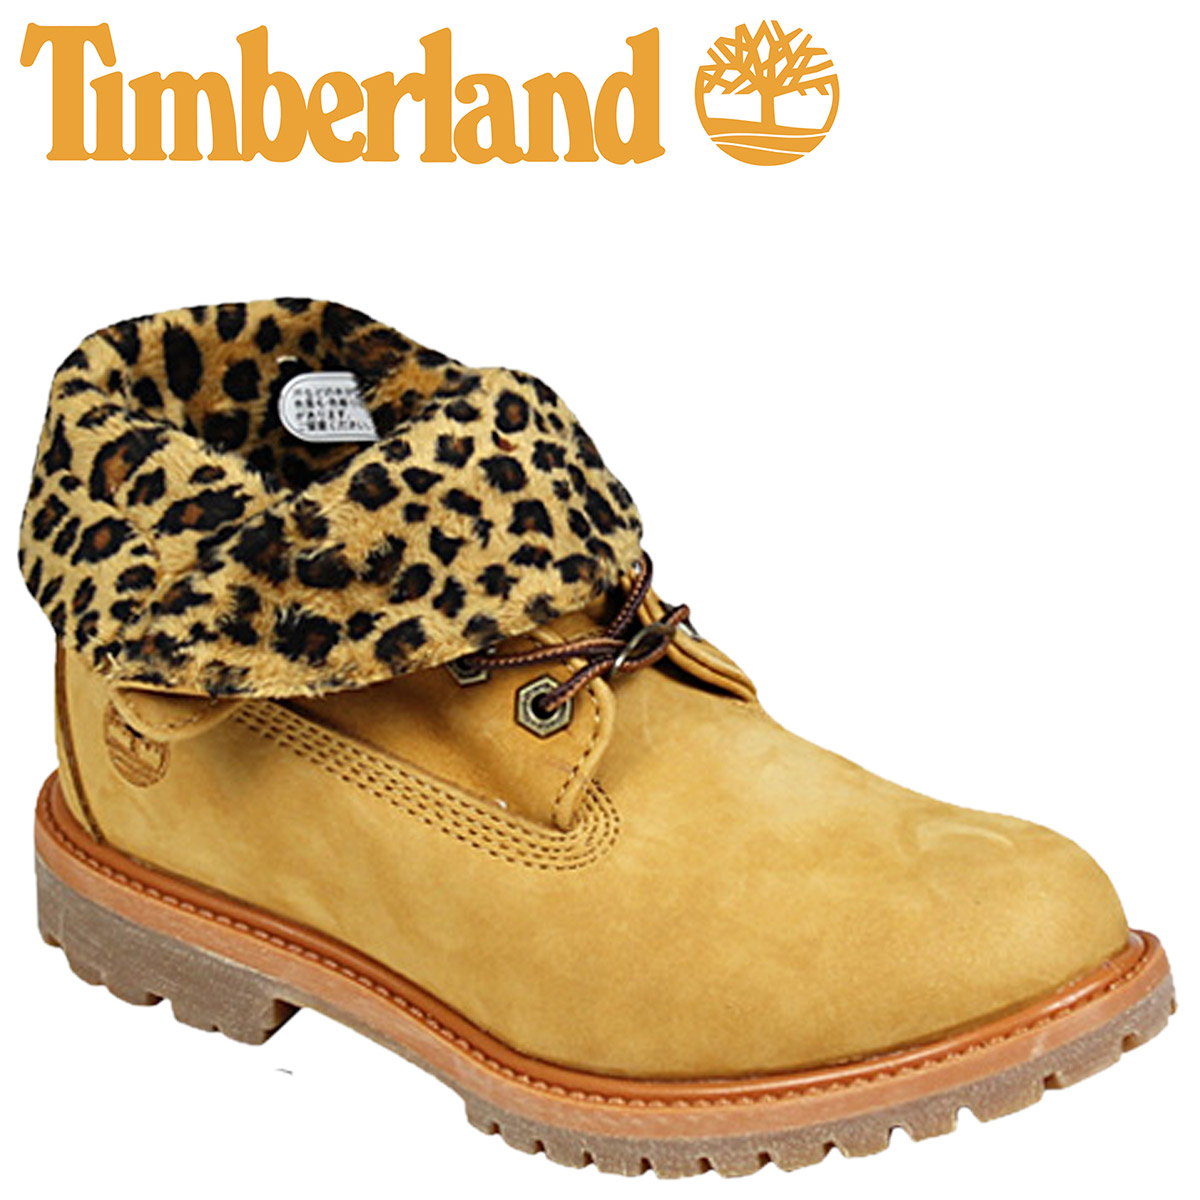 43db9dcfc95 ALLSPORTS: [SOLD OUT] Timberland Timberland Lady's kids authentic ...